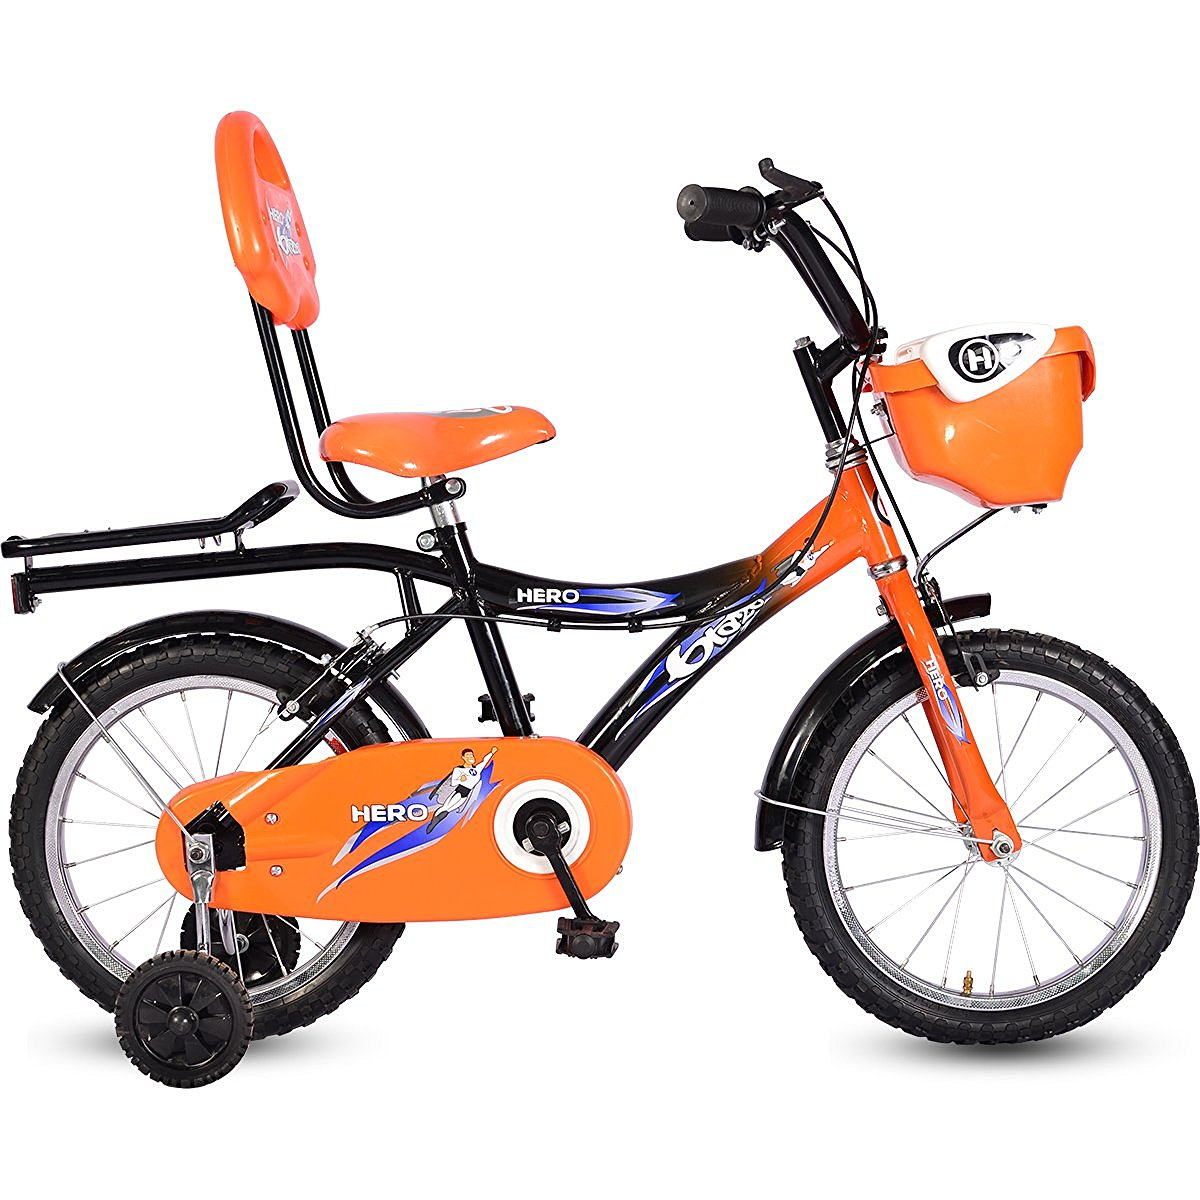 Top 5 Baby Bicycle For 2 Year Old Kids In India Whatbestinindia Com